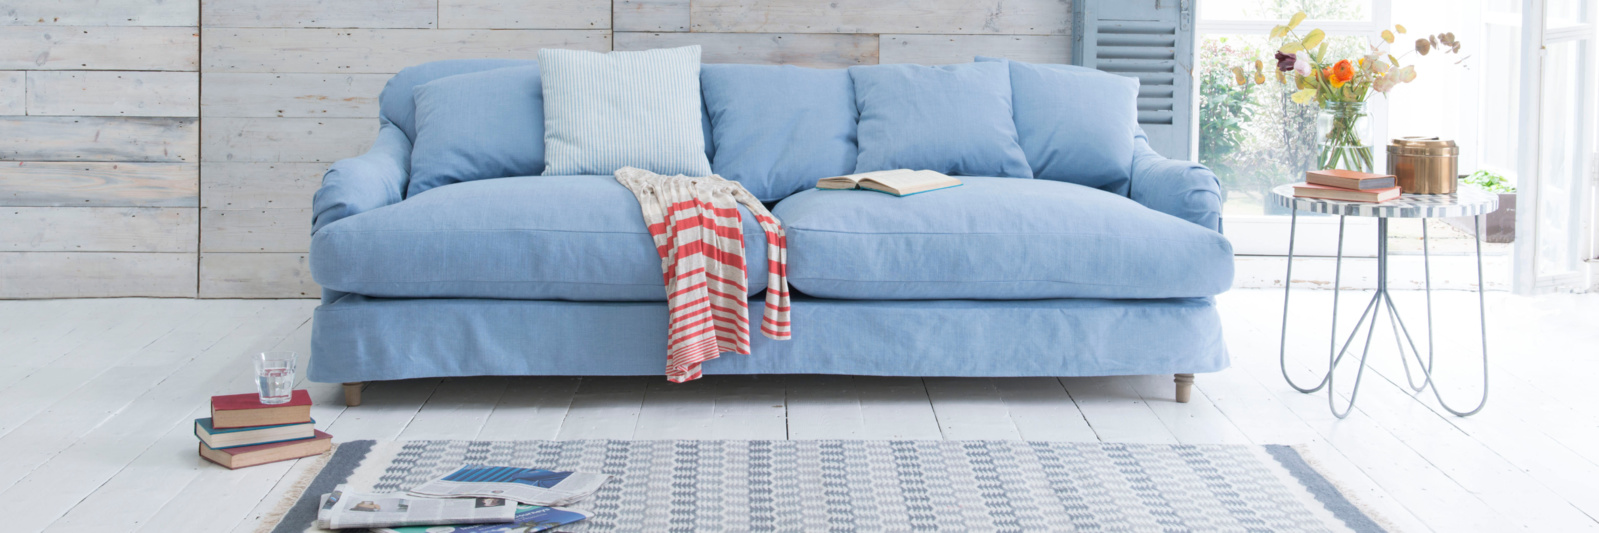 Achilles sofa with loose covers